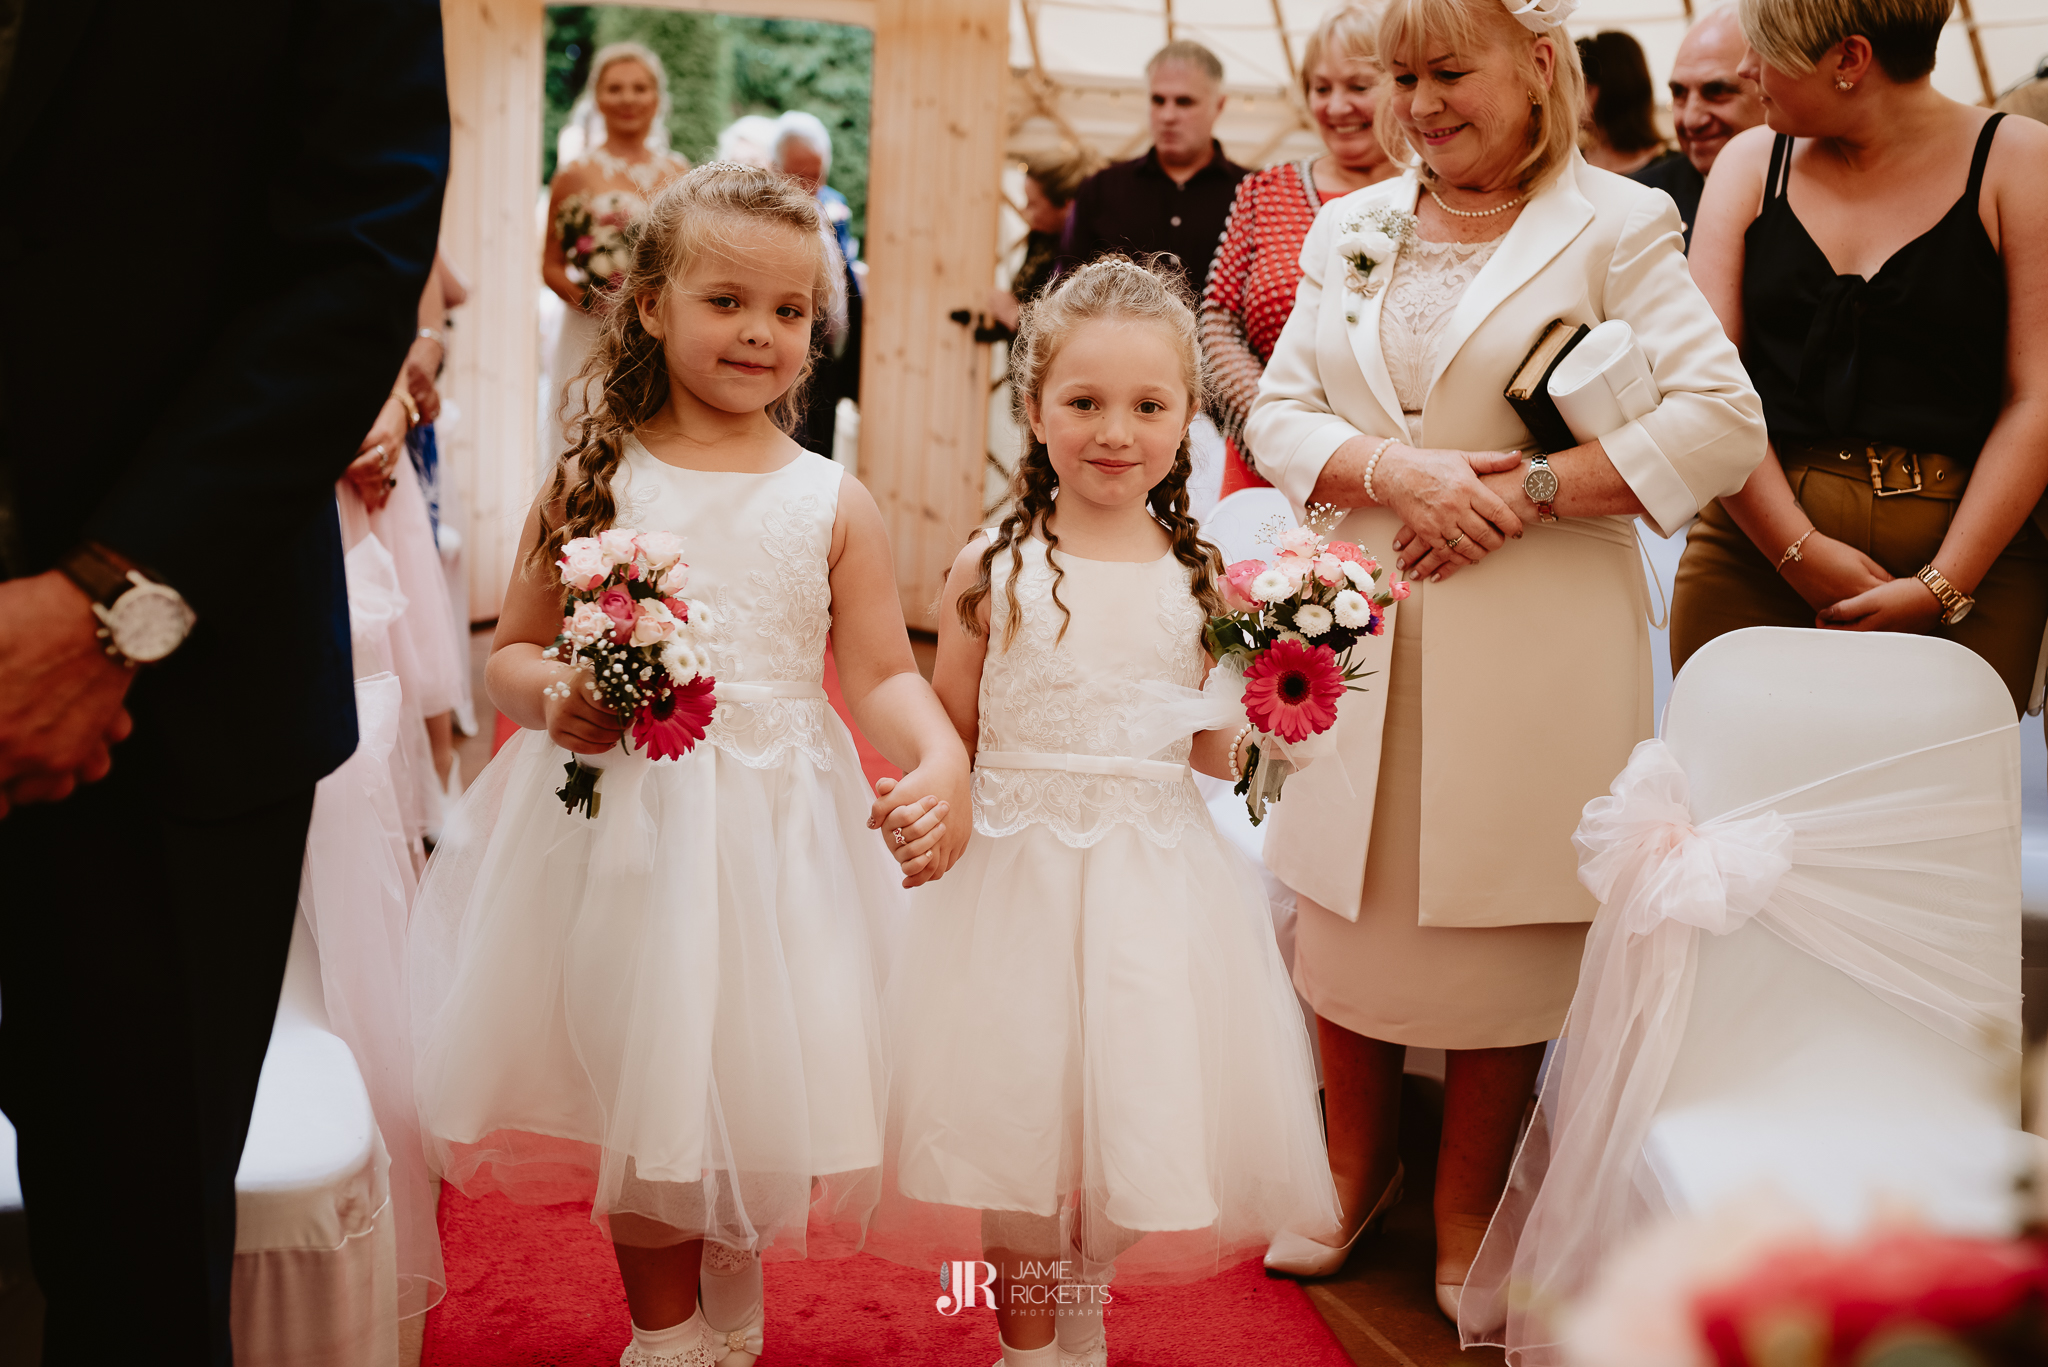 Wroxeter-Hotel-Wedding-Photography-In-Shropshire-By-Shropshire-Wedding-Photographer-Jamie-Ricketts-052.JPG